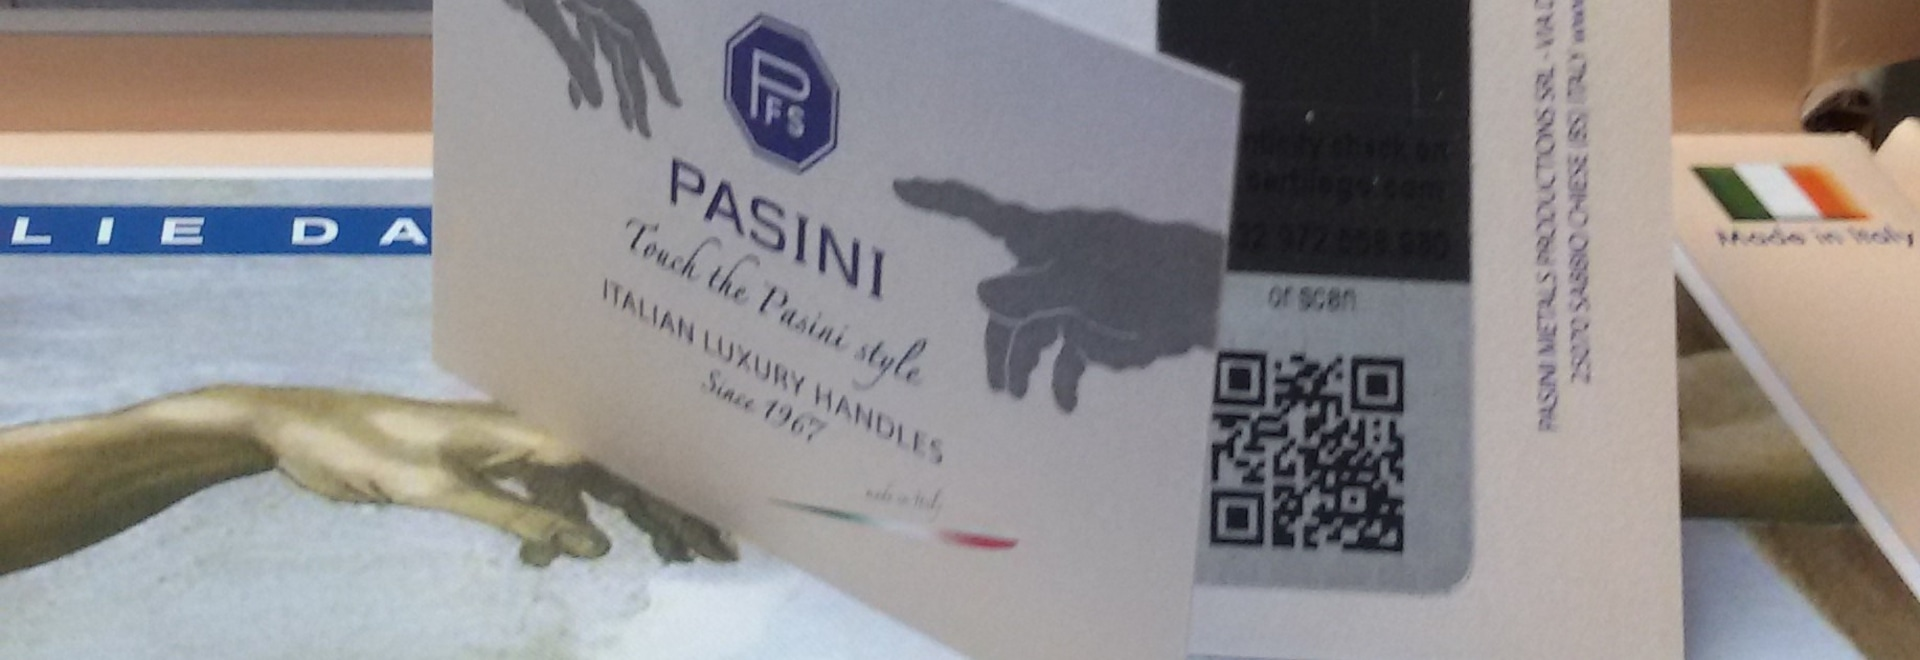 PFS PASINI Authenticity tag